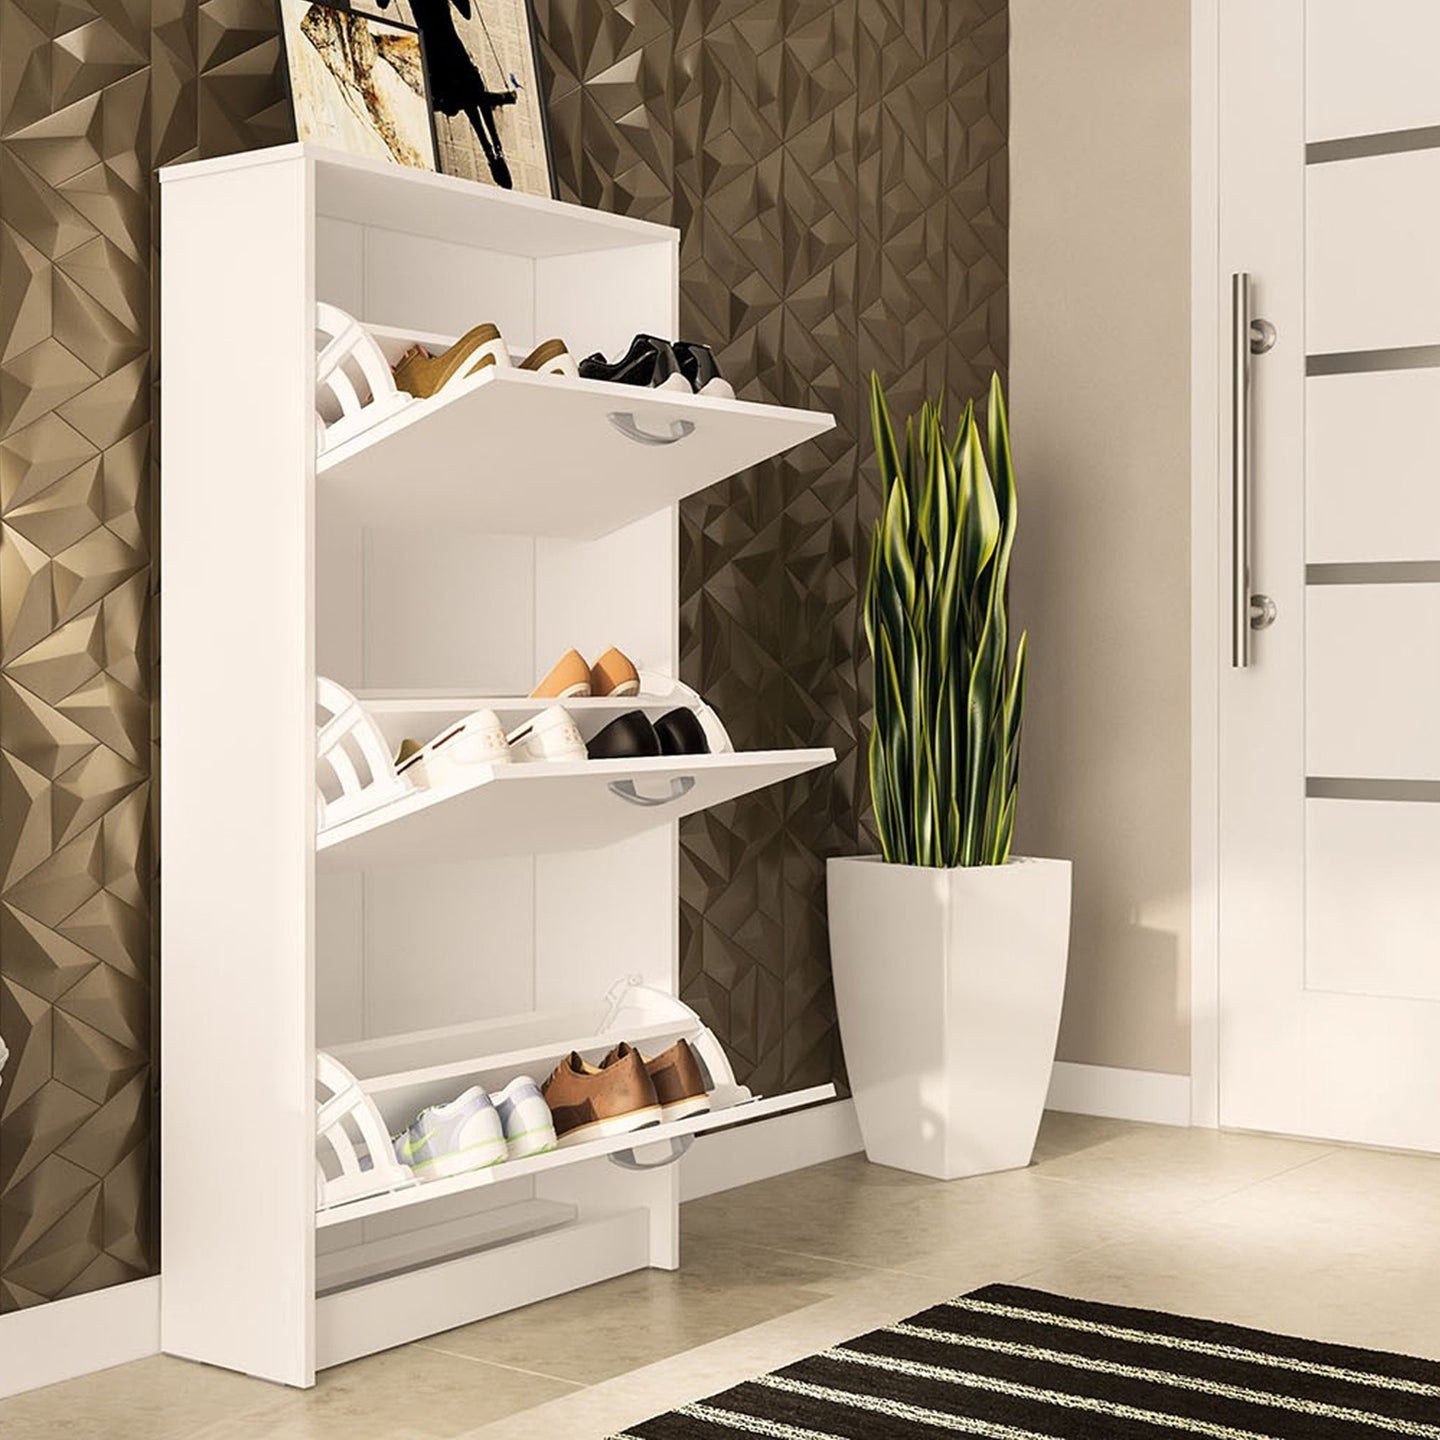 Boahaus Antioch Shoe Organizer Cabinet, White, 03 drawers, up to 18 shoes